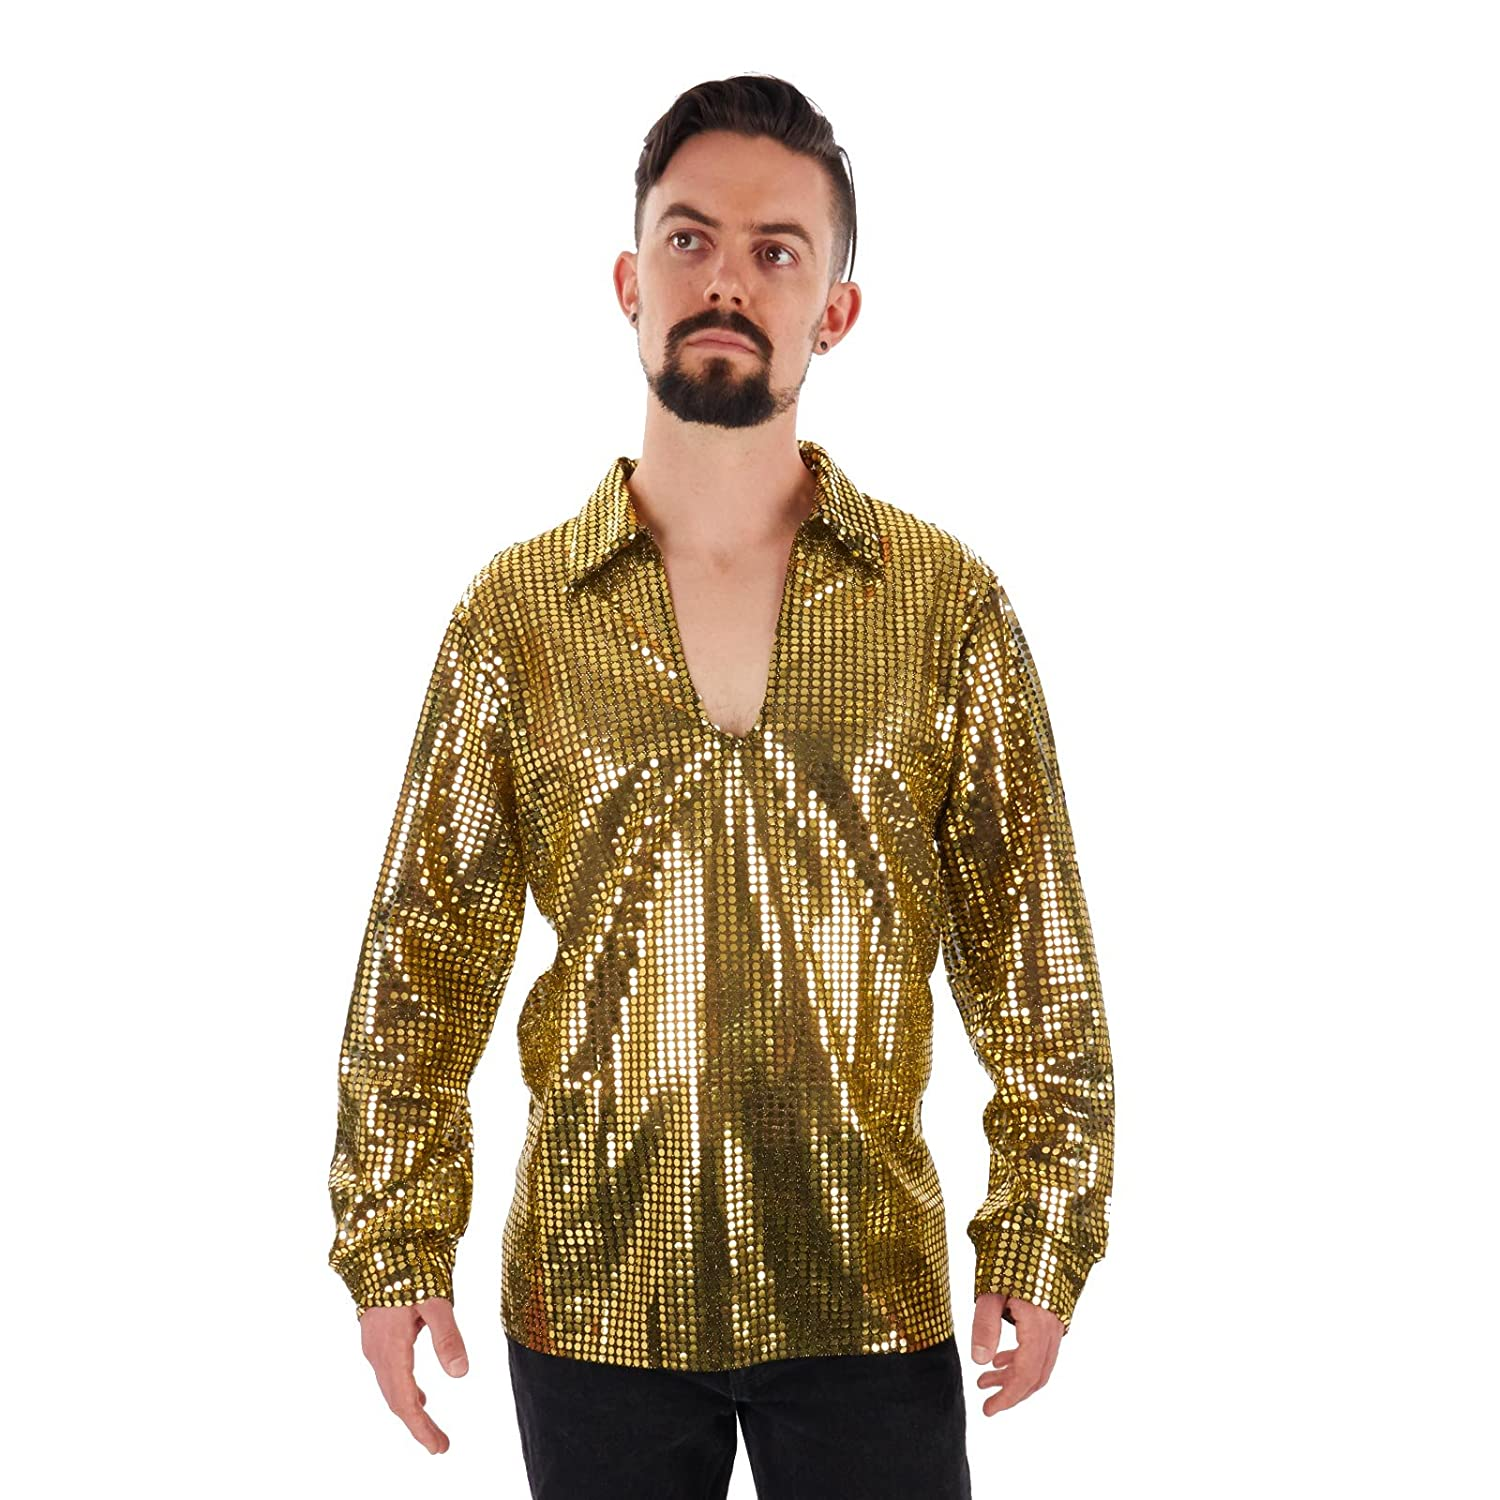 70s Costumes: Disco Costumes, Hippie Outfits Mens Sequin Disco Shirt $29.95 AT vintagedancer.com